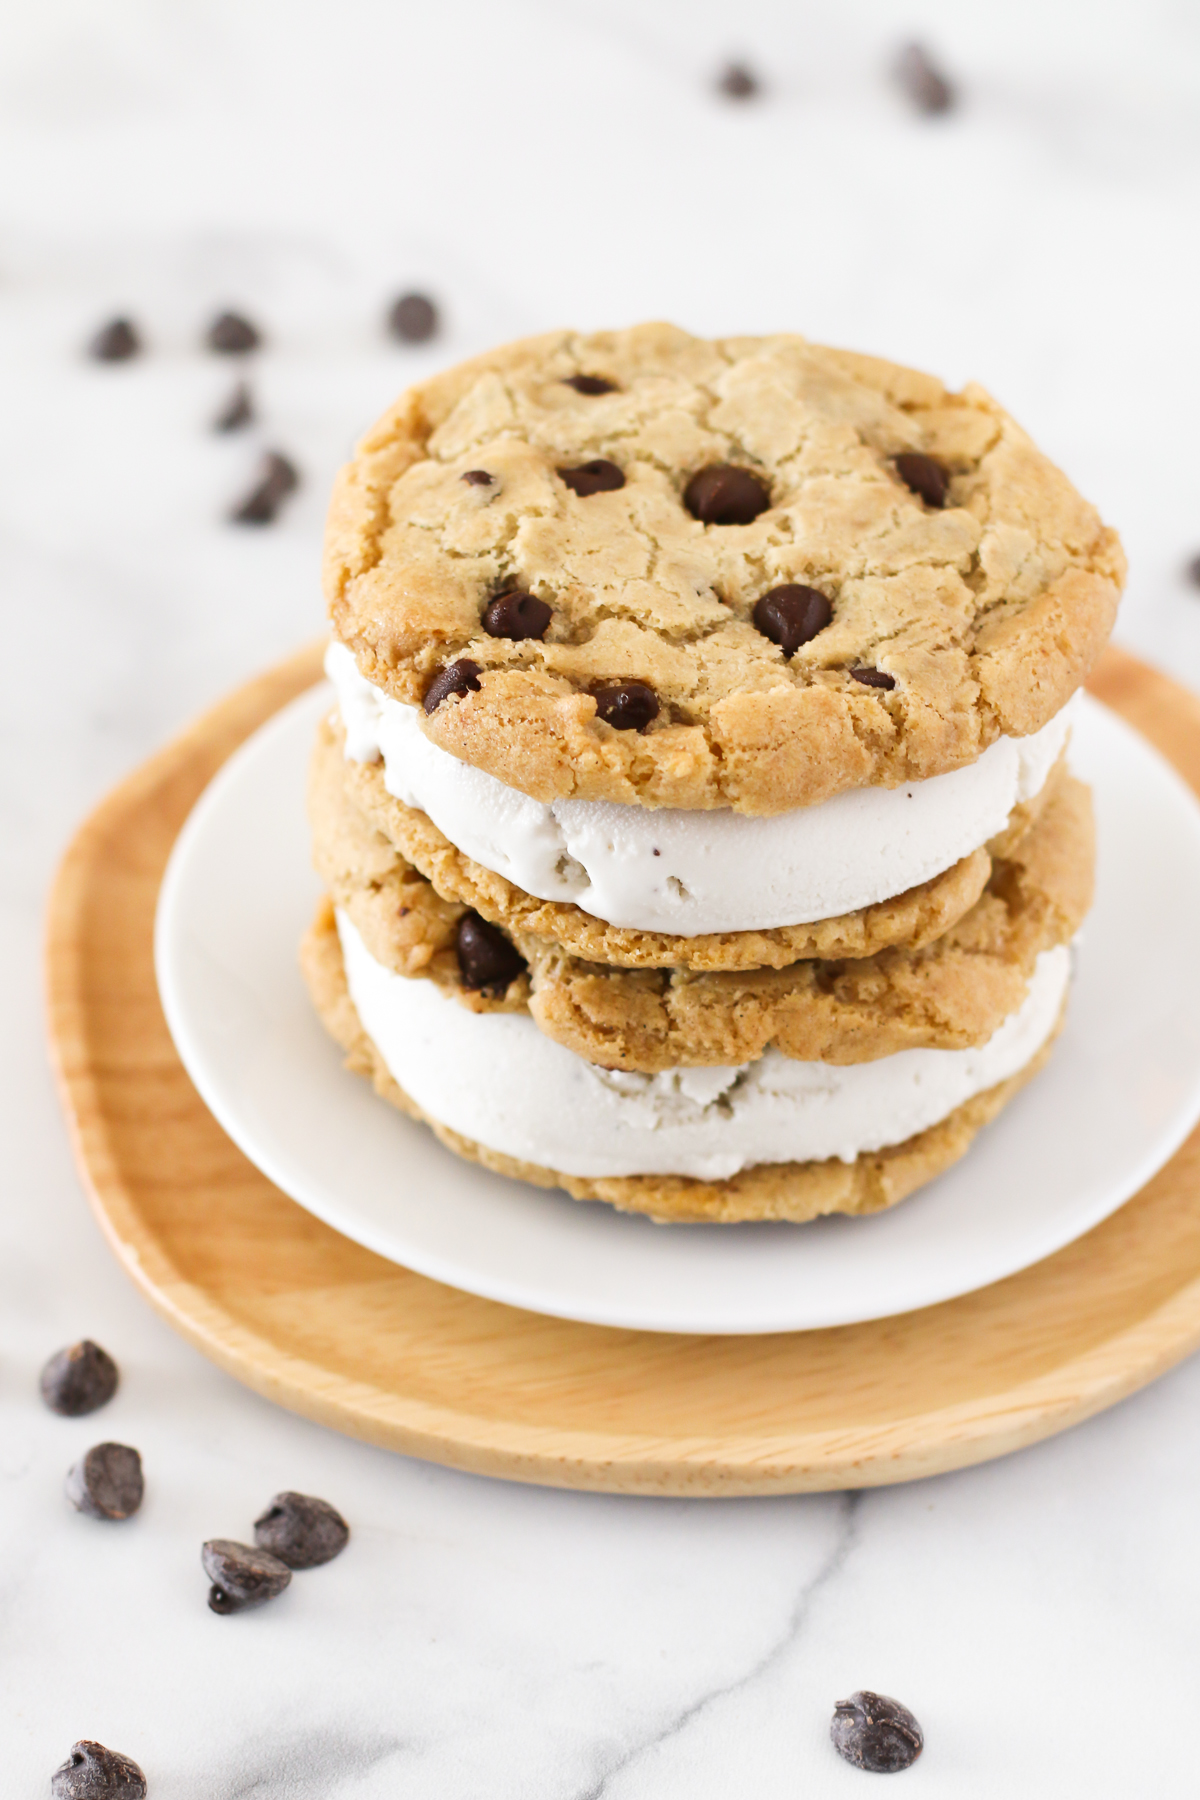 Gluten Free Vegan Chocolate Chip Cookie Ice Cream Sandwiches. Creamy vanilla ice cream, sandwiched between two chocolate chip cookies. The perfect summer treat!